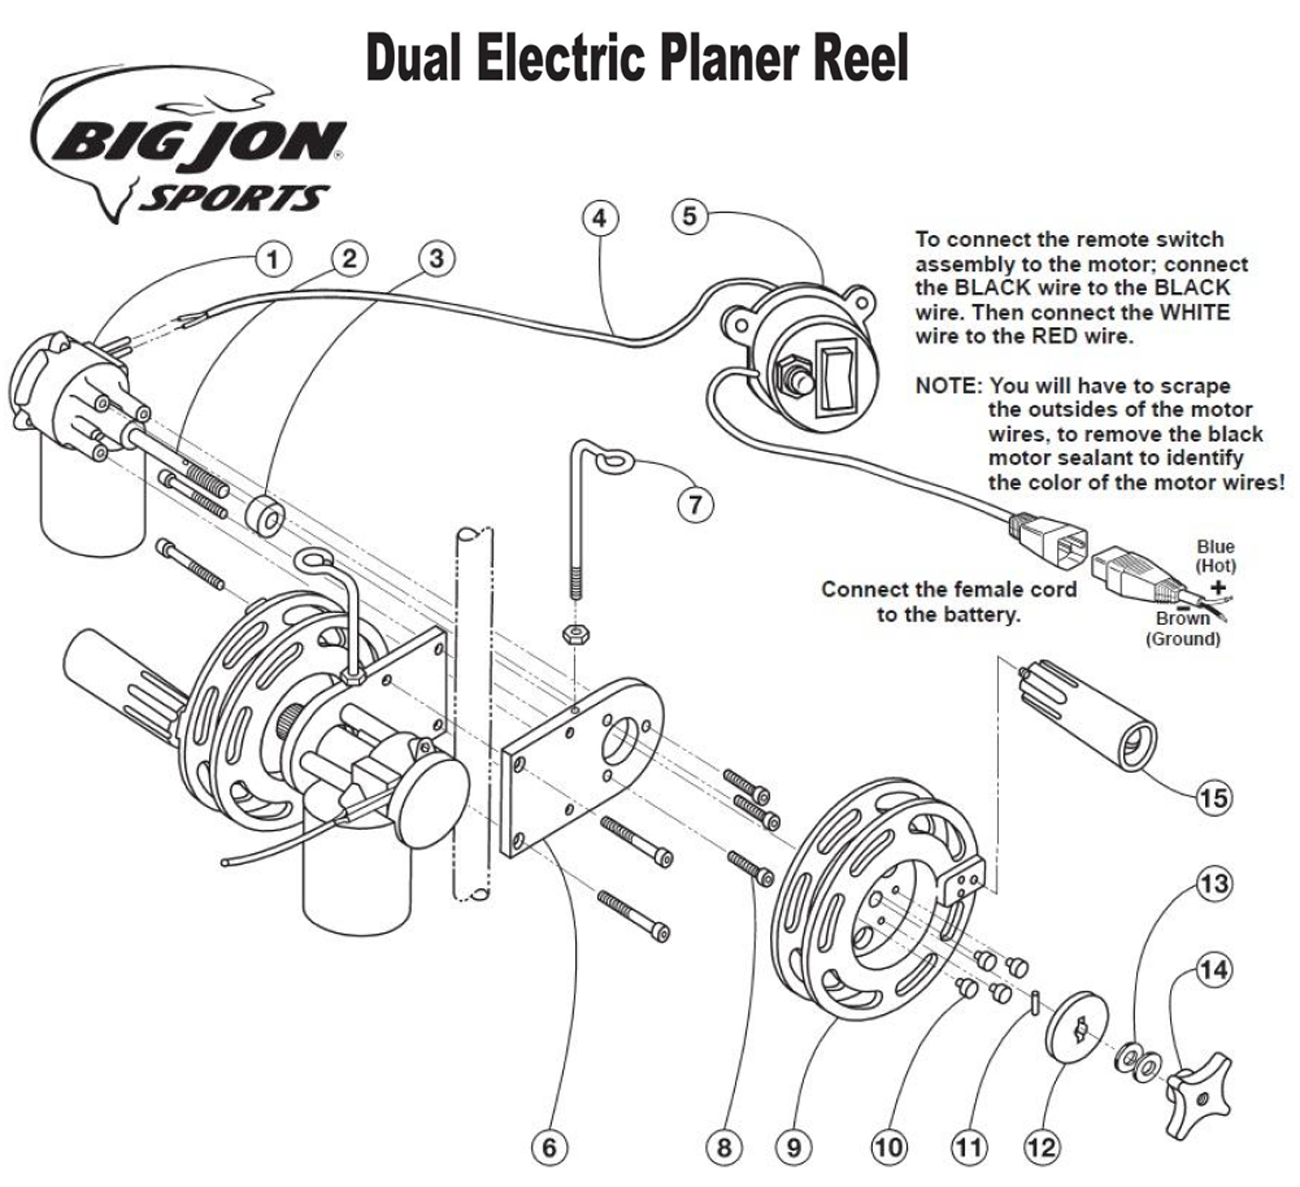 order big jon dual electric planer reel parts online from